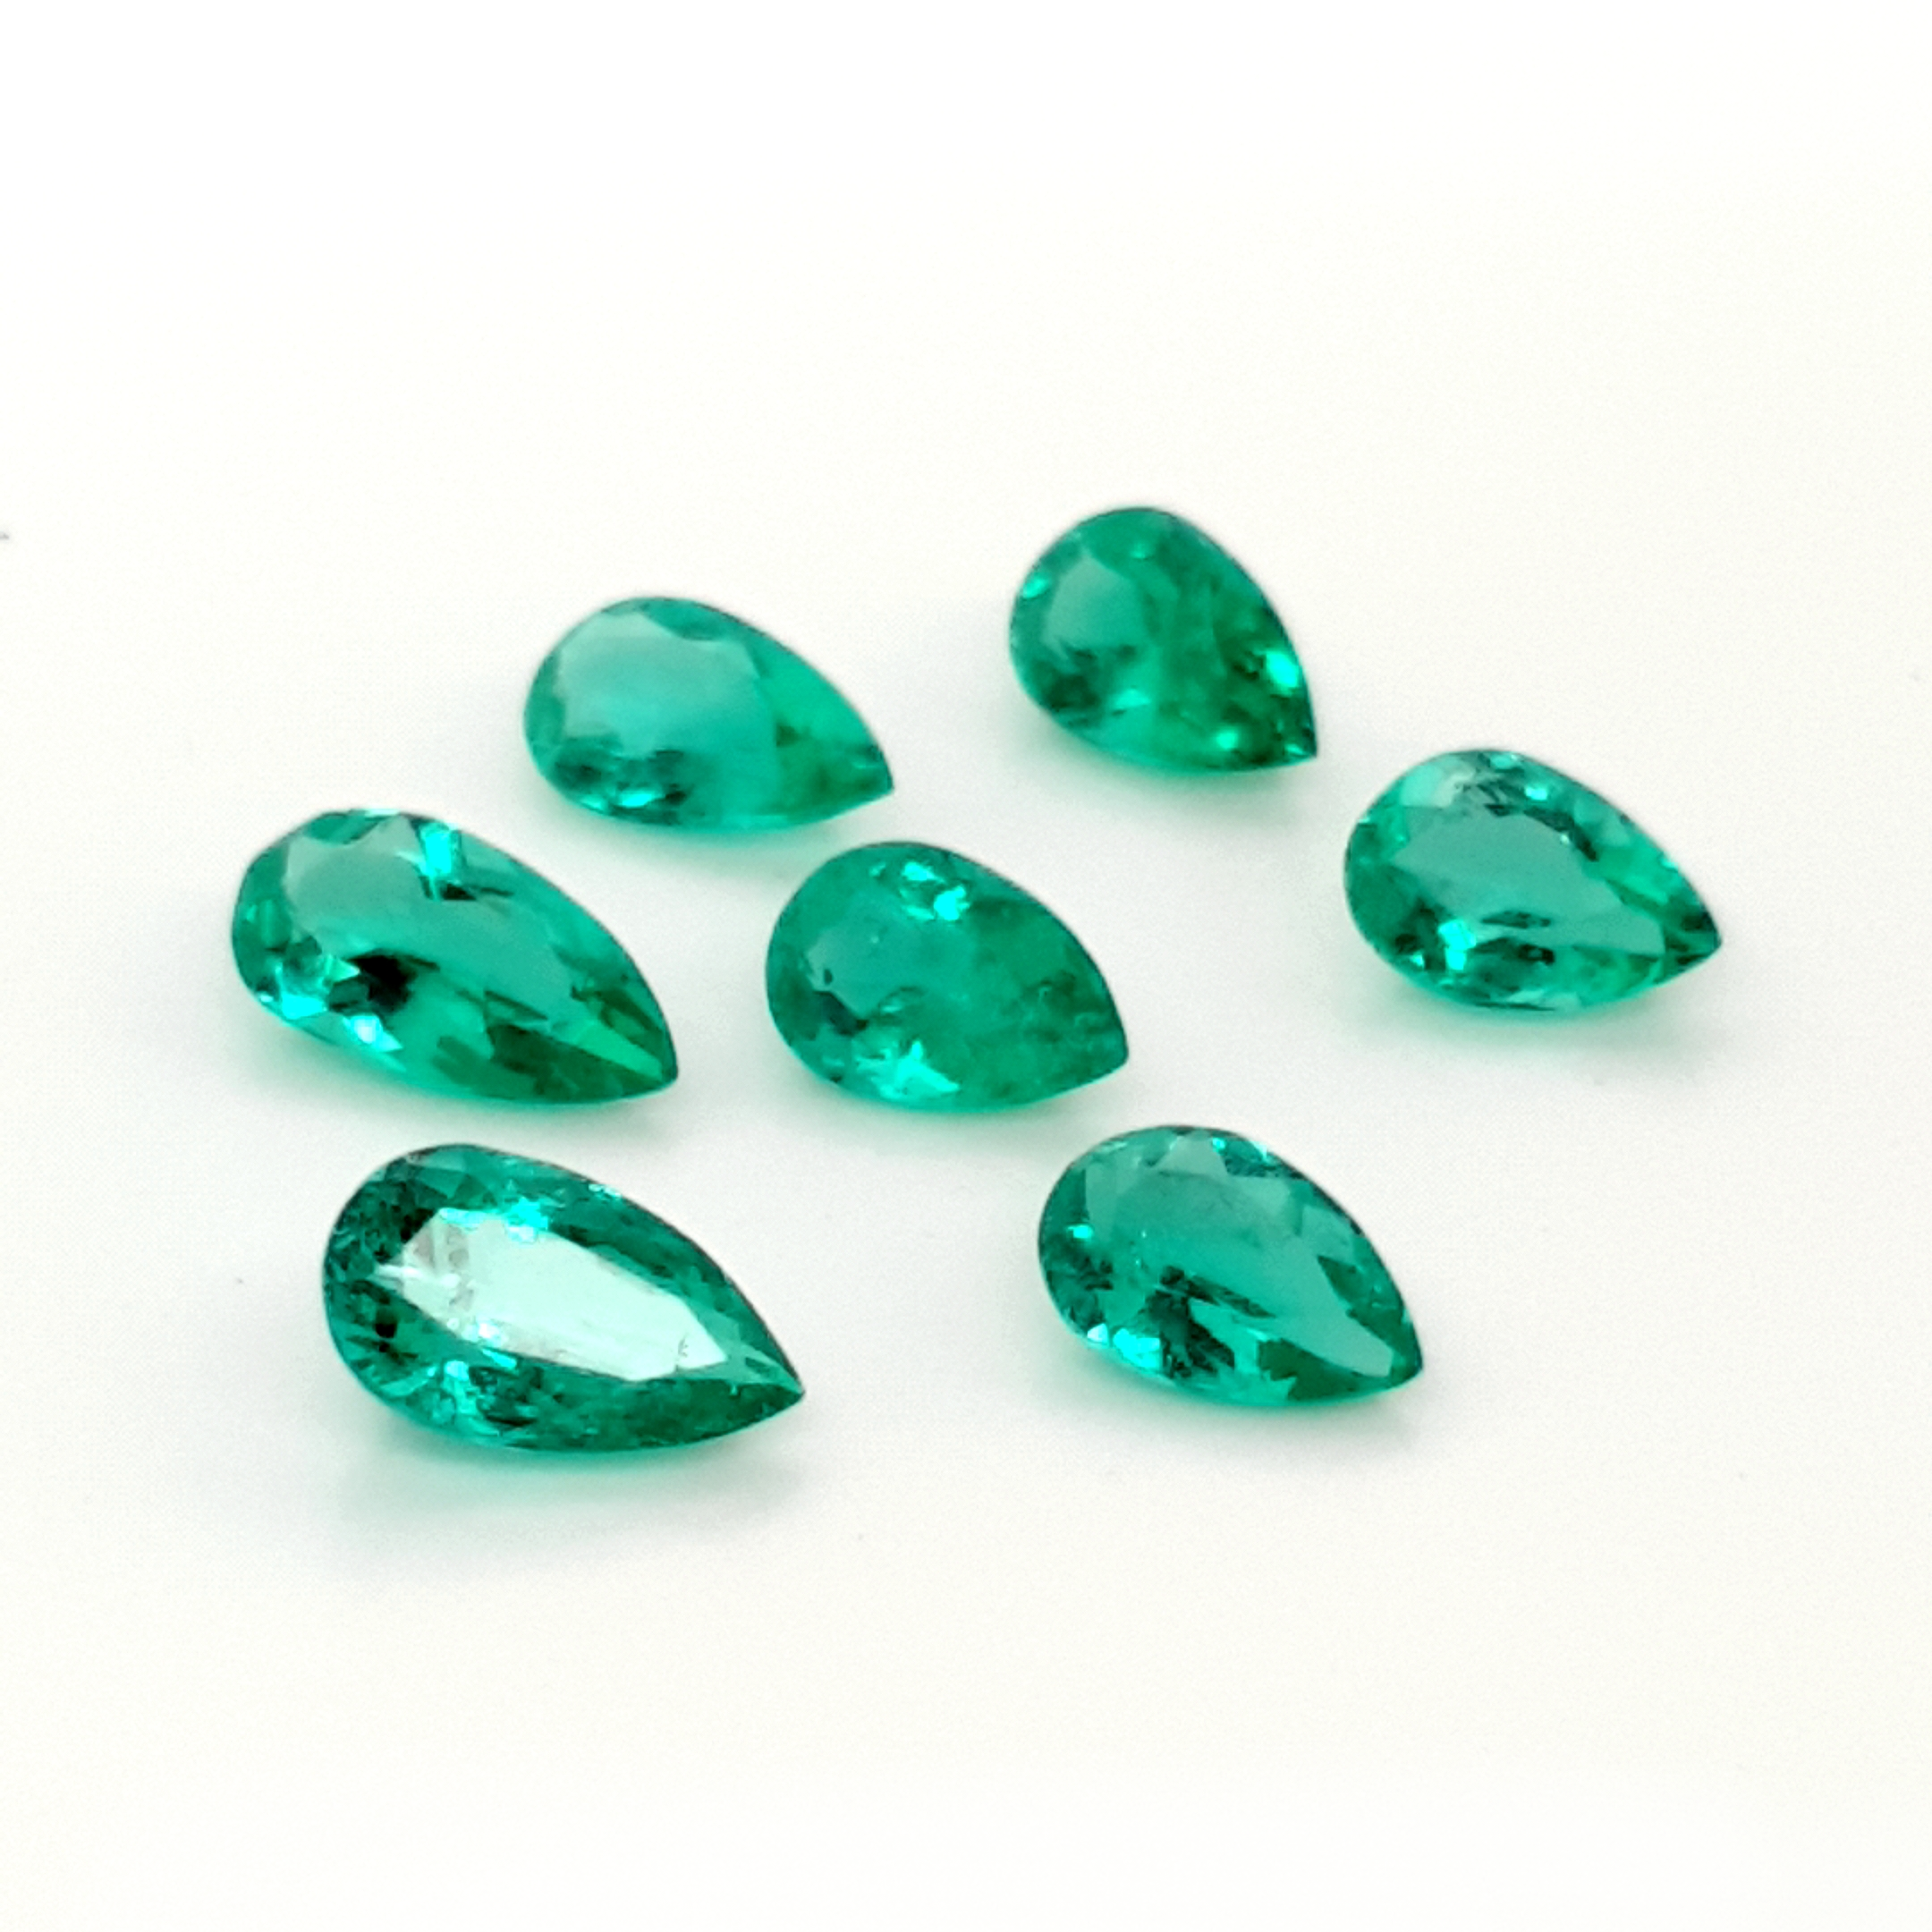 12,50ct. PearShape Emerald from Colombia EMH16D18 ClaudiaHamann__2021-03-30-00-27-56